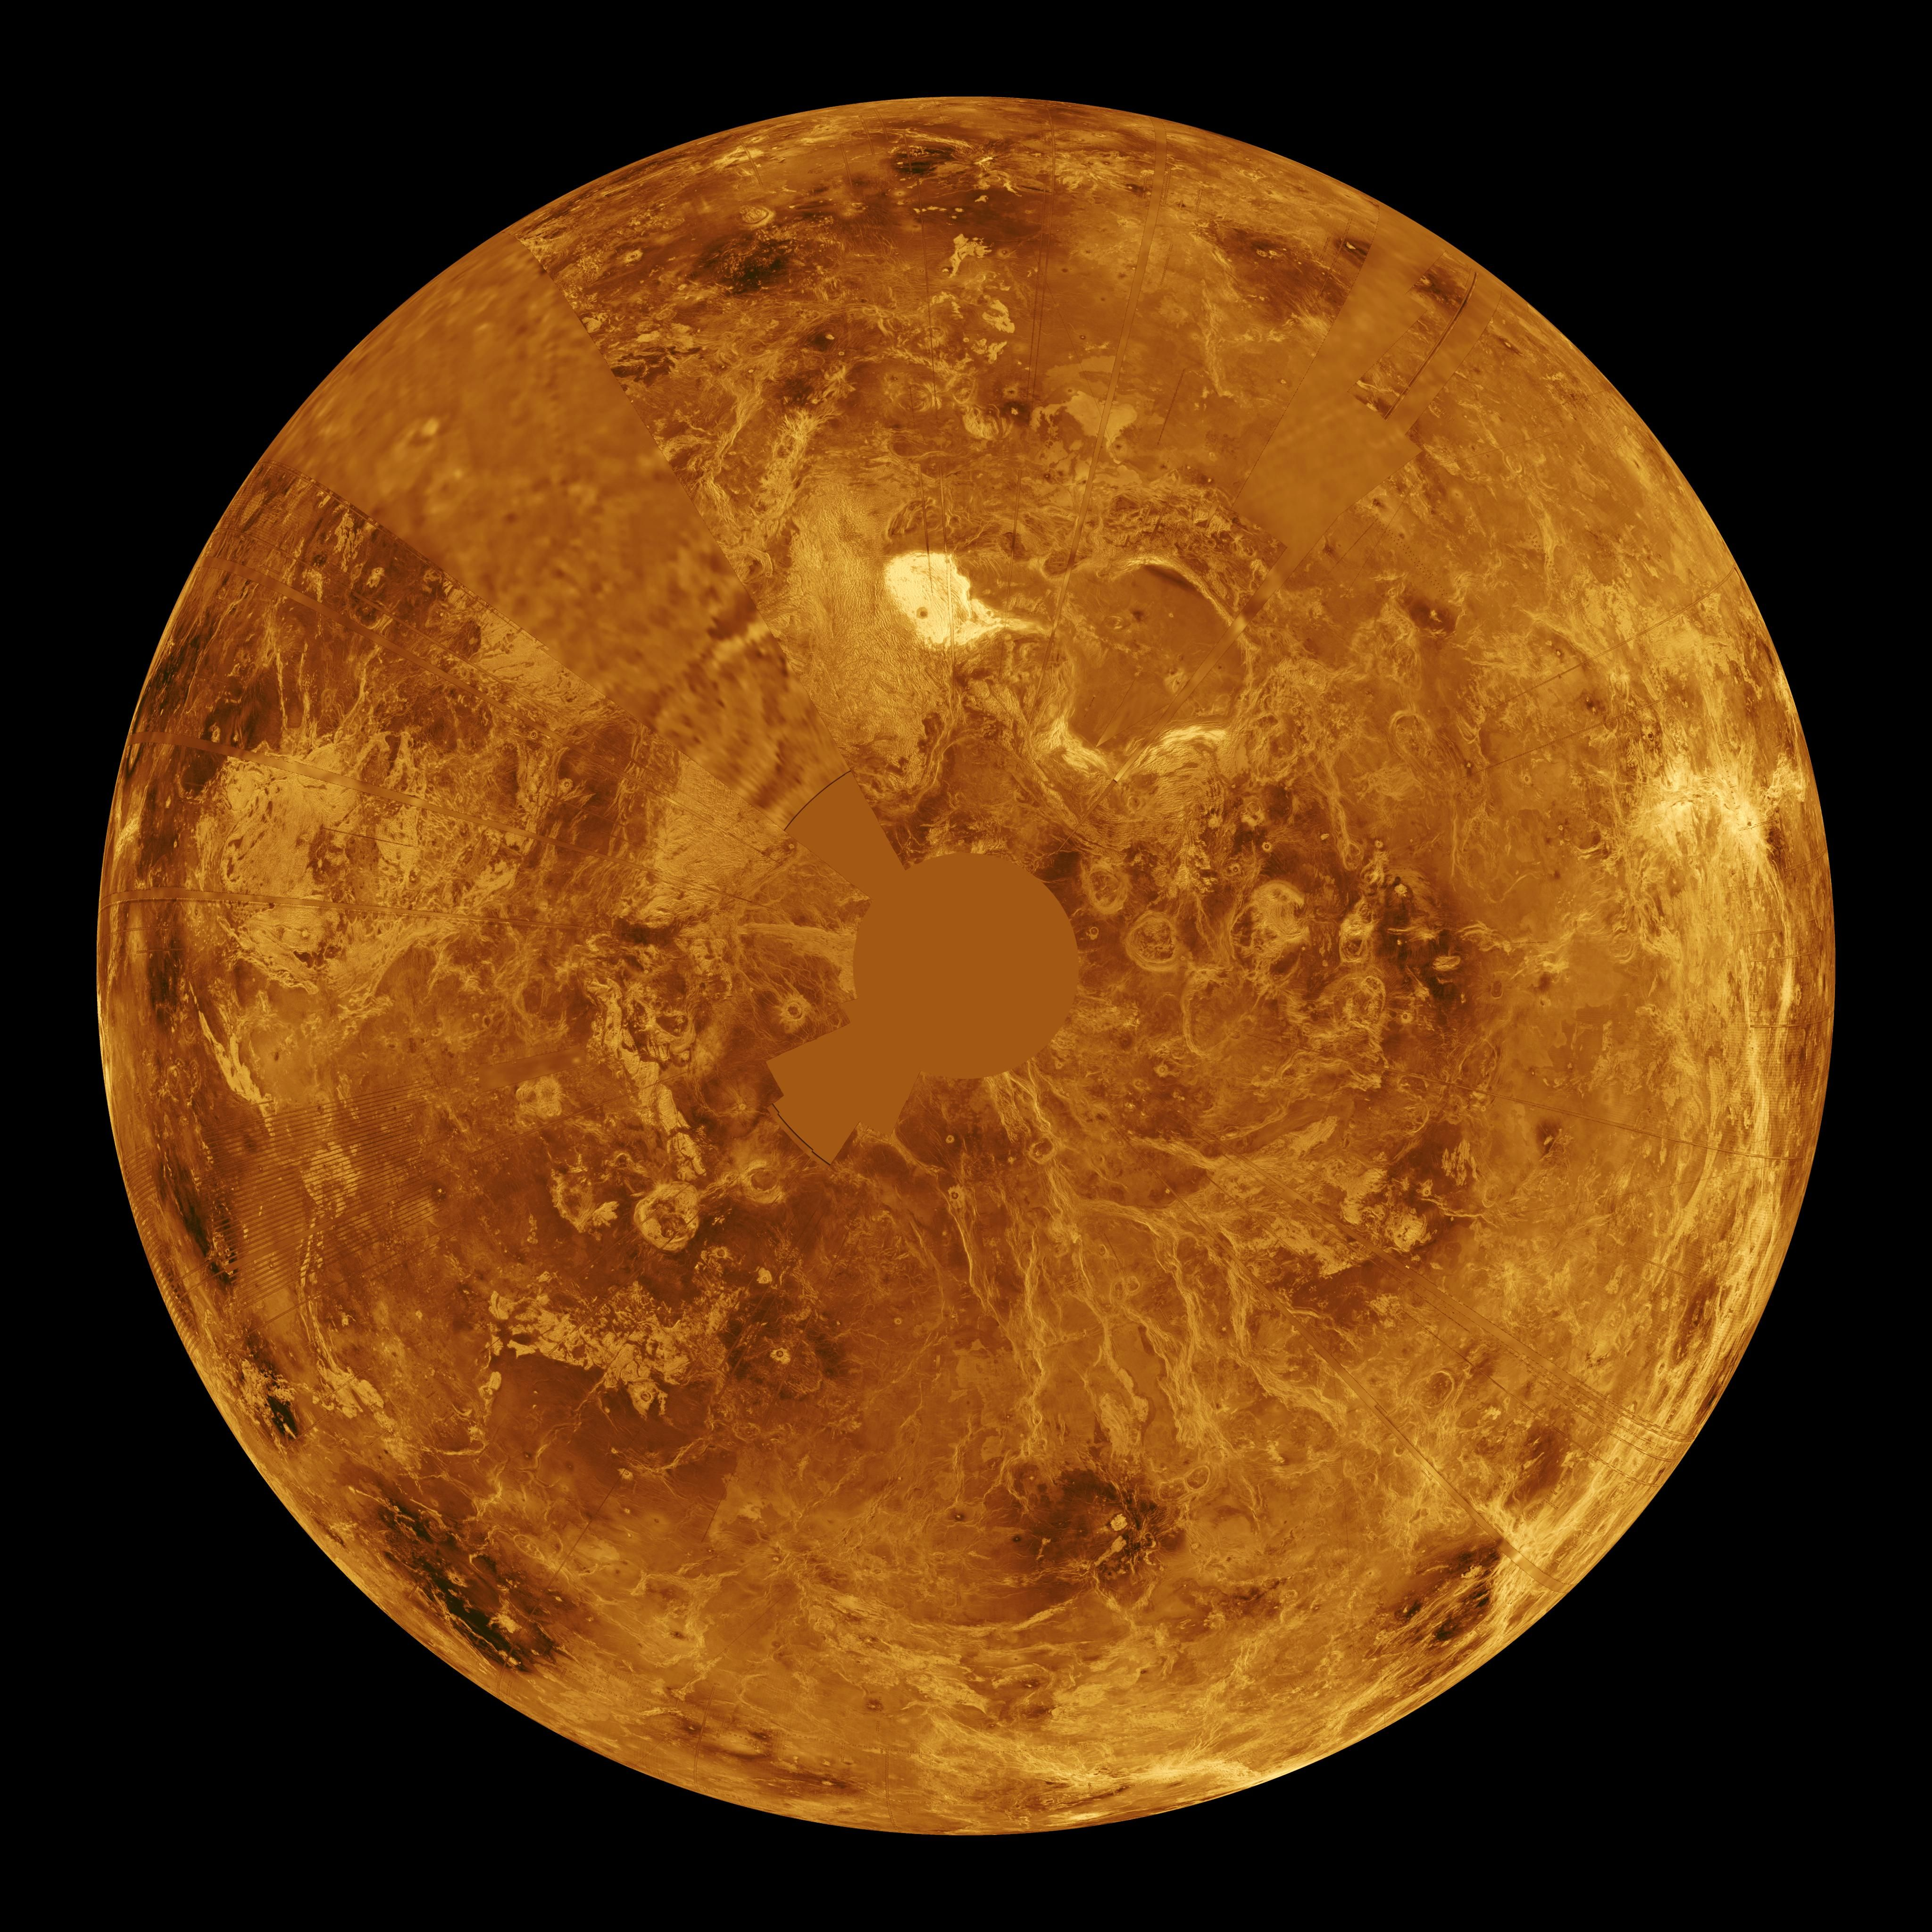 """venus planet pictures nasa - Bing Images 